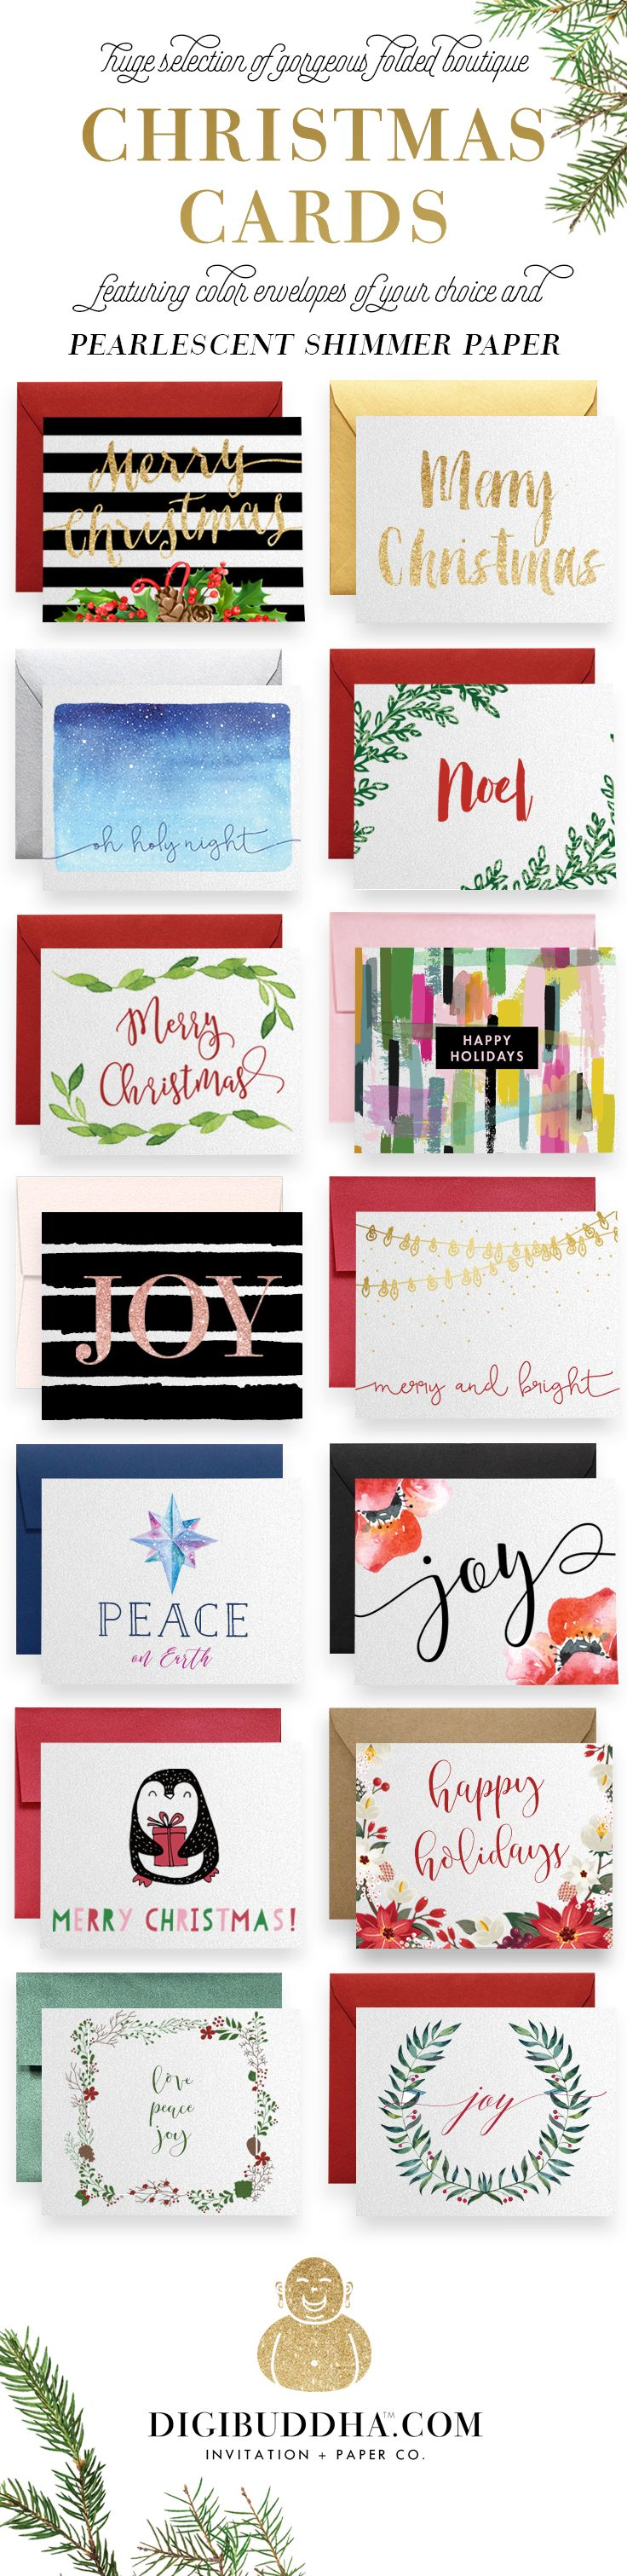 Gorgeous boutique quality folded Christmas cards featuring color envelopes of your choice and printed on luxe pearlescent shimmer paper.  Huge selection of designs ranging from modern Christmas cards to Elegant Holiday cards. Blank inside so you can customize your holiday cards with a personalized Christmas card message. Fine Christmas stationery makes quite an impression. Exclusively by Digibuddha.